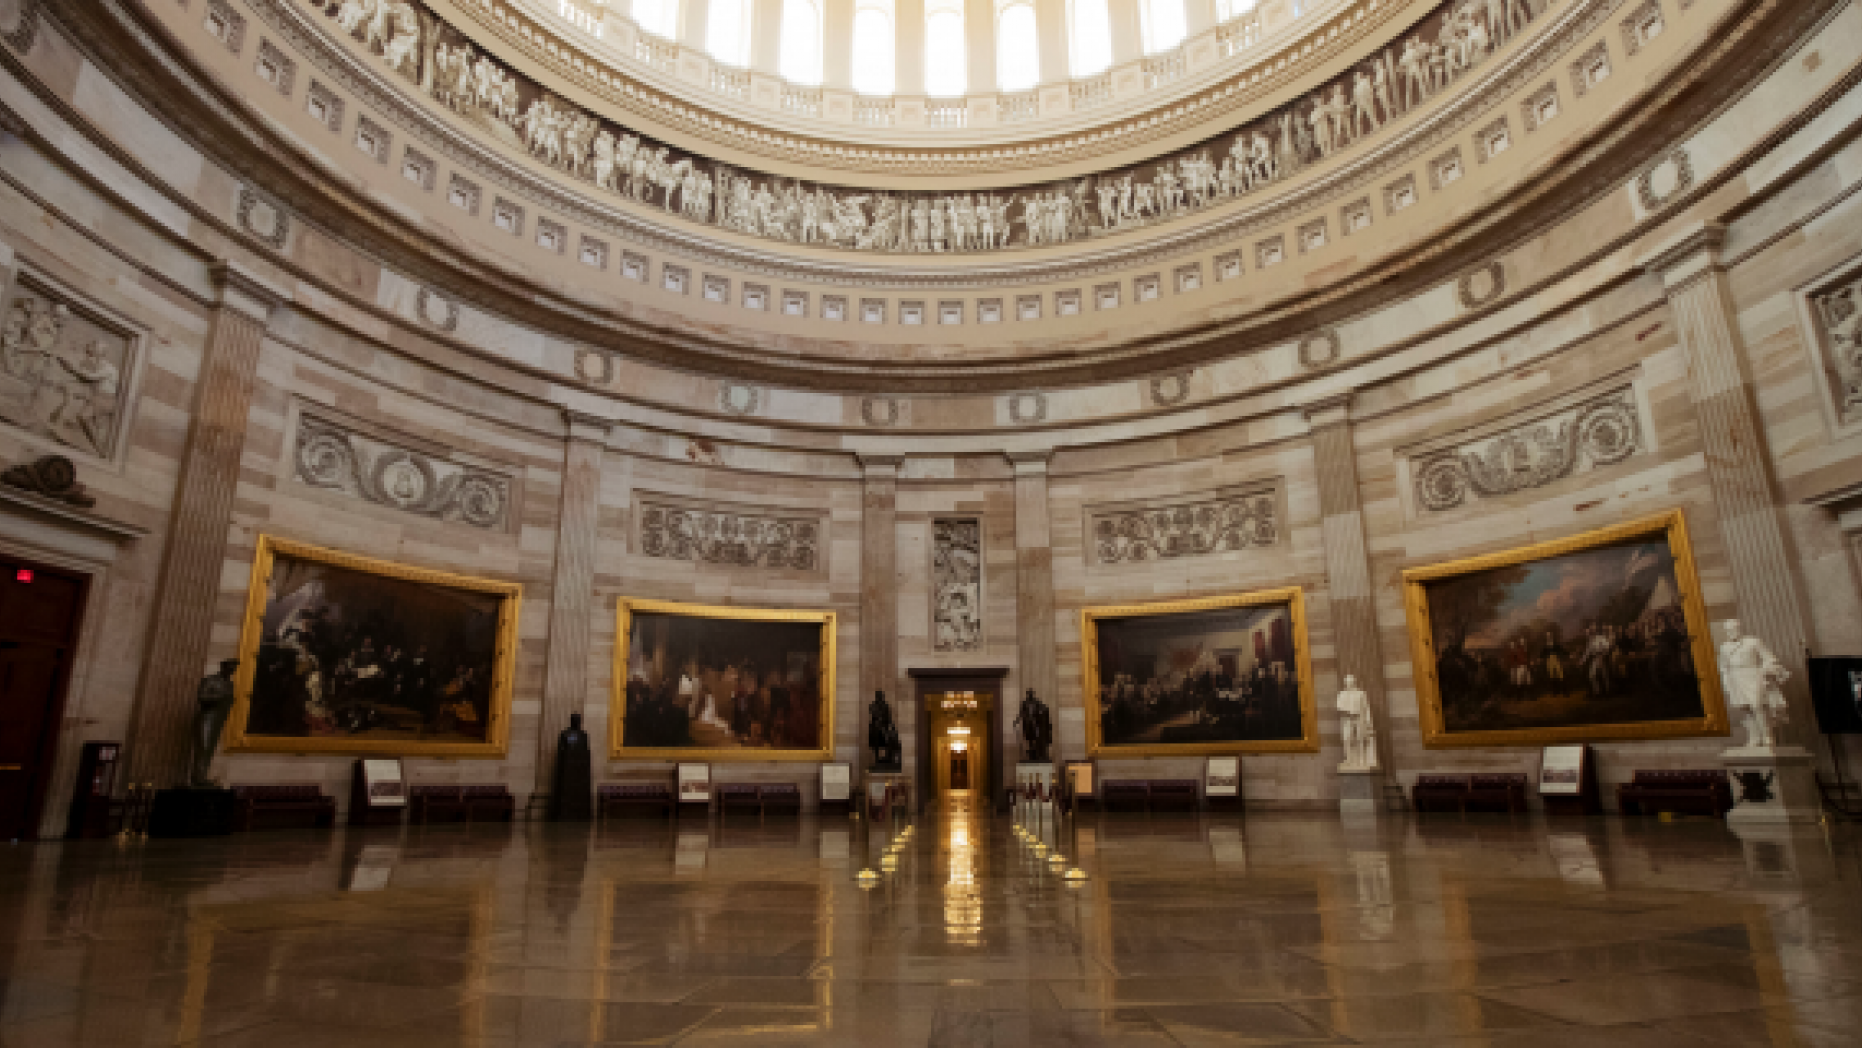 The dull U.S. Capitol Rotunda is seen during a prejudiced supervision shutdown in Washington, Monday, Dec. 24, 2018. Both sides in a long-running quarrel over appropriation President Donald Trump's U.S.-Mexico limit wall seem to have changed toward any other, though a shutdown of one-fourth of a sovereign supervision entered Christmas though a transparent fortitude in sight. (AP Photo/Manuel Balce Ceneta)